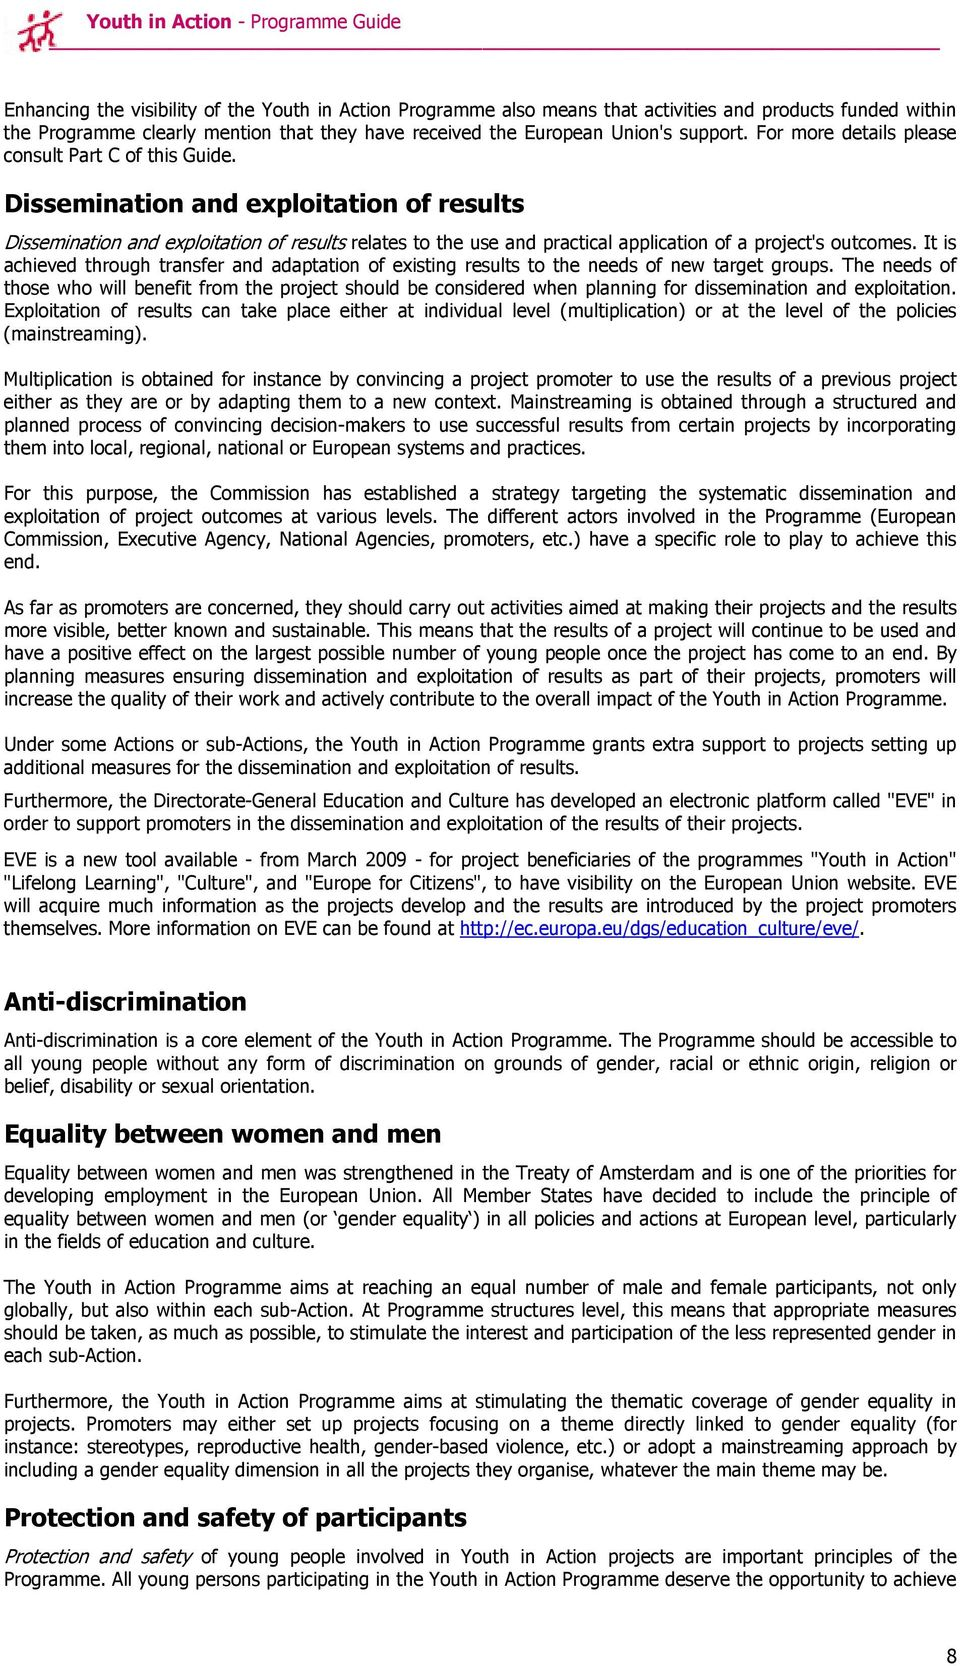 Dissemination and exploitation of results Dissemination and exploitation of results relates to the use and practical application of a project's outcomes.